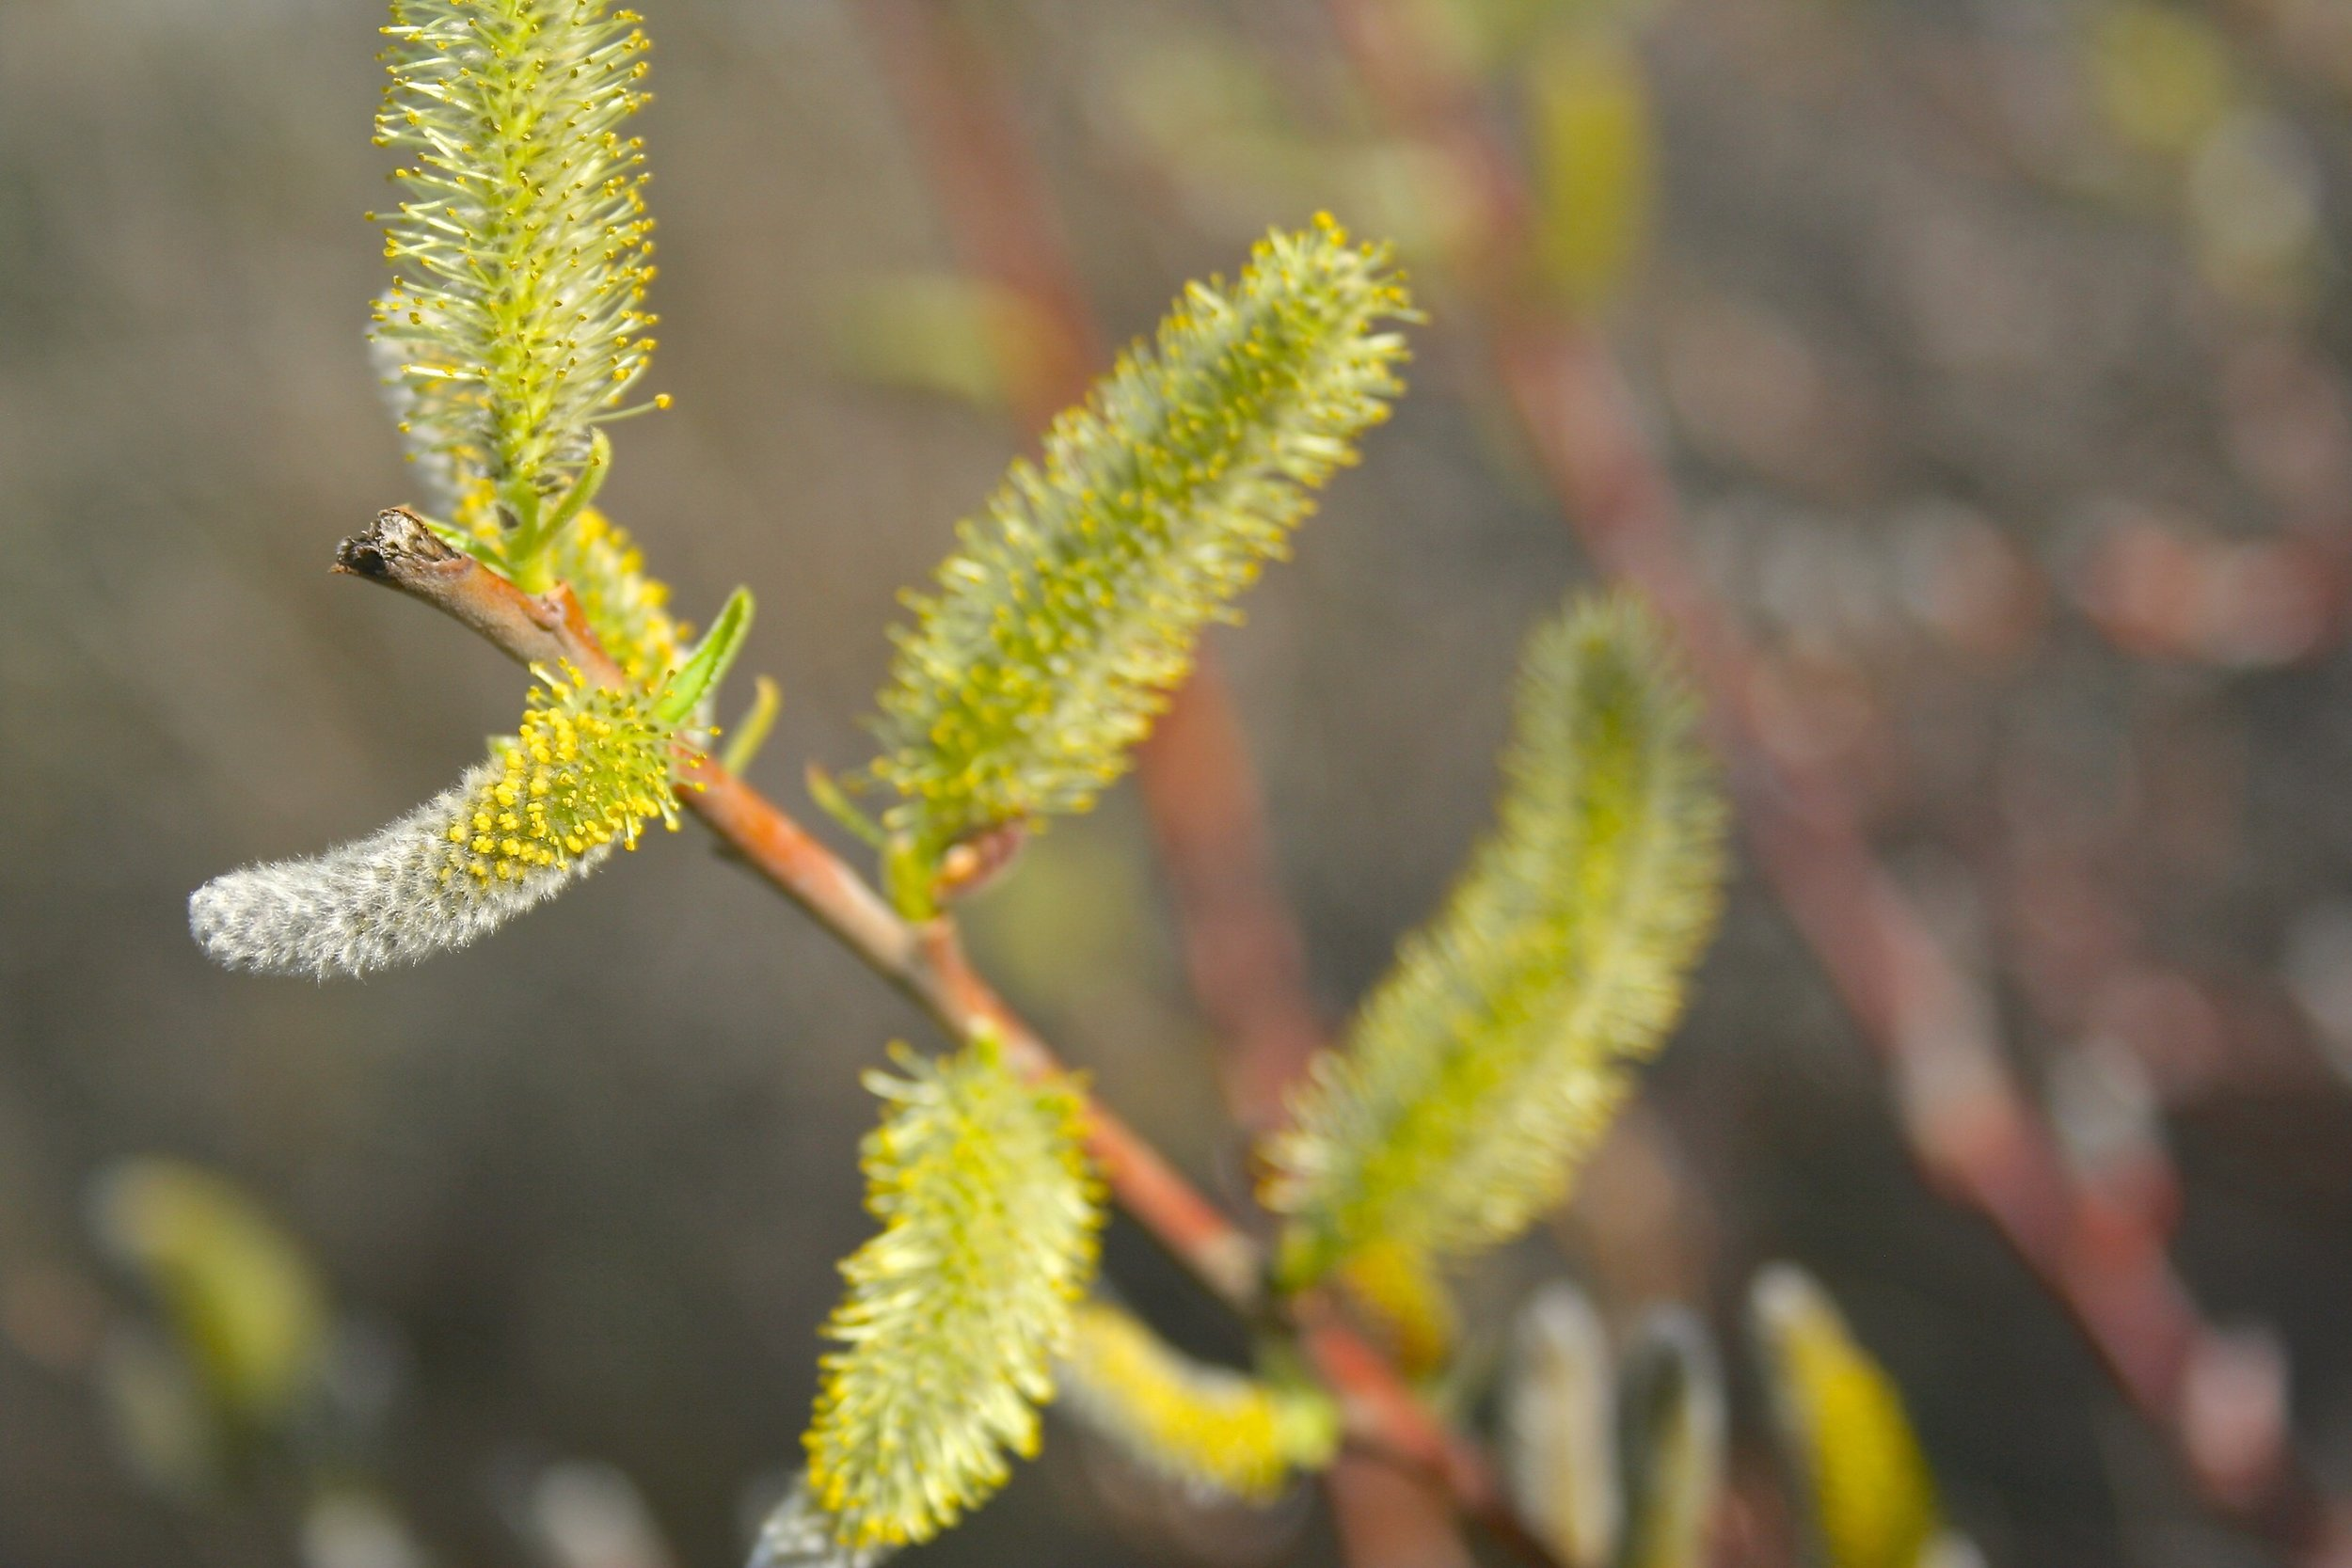 Salix sp.  near North San Juan, CA. 2015.